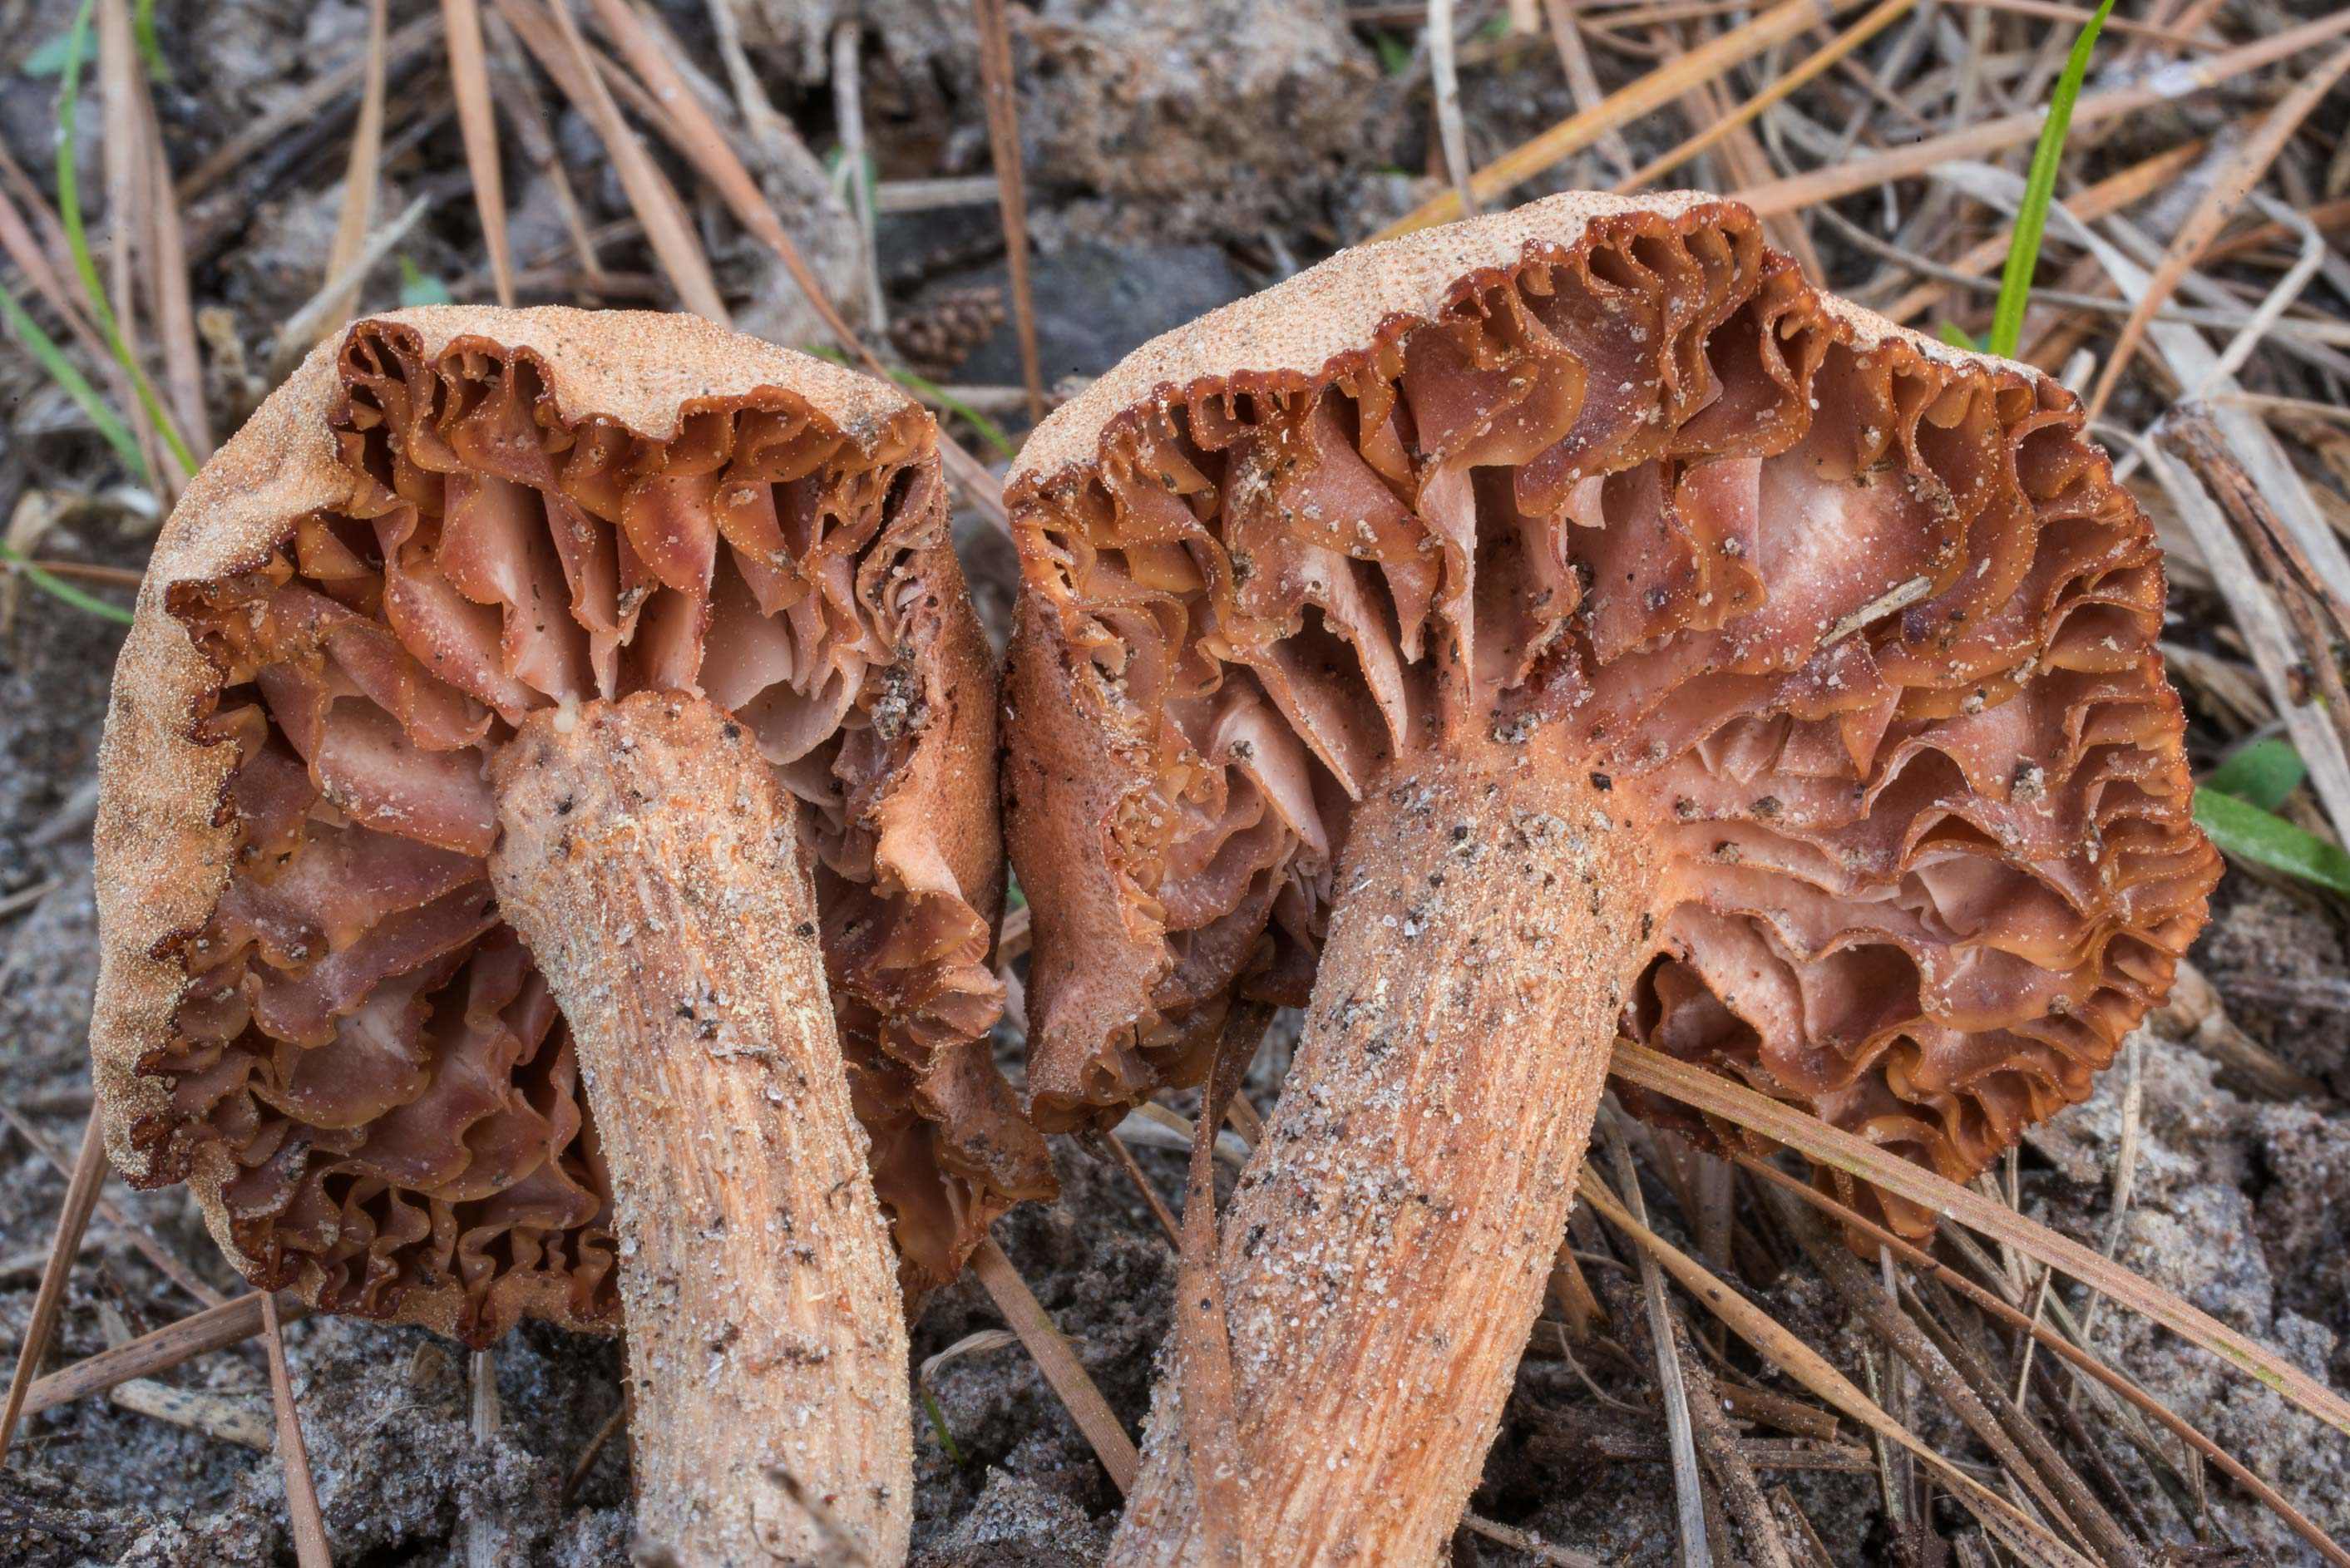 Underside of sand dune mushrooms (Laccaria...in Sam Houston National Forest. Texas